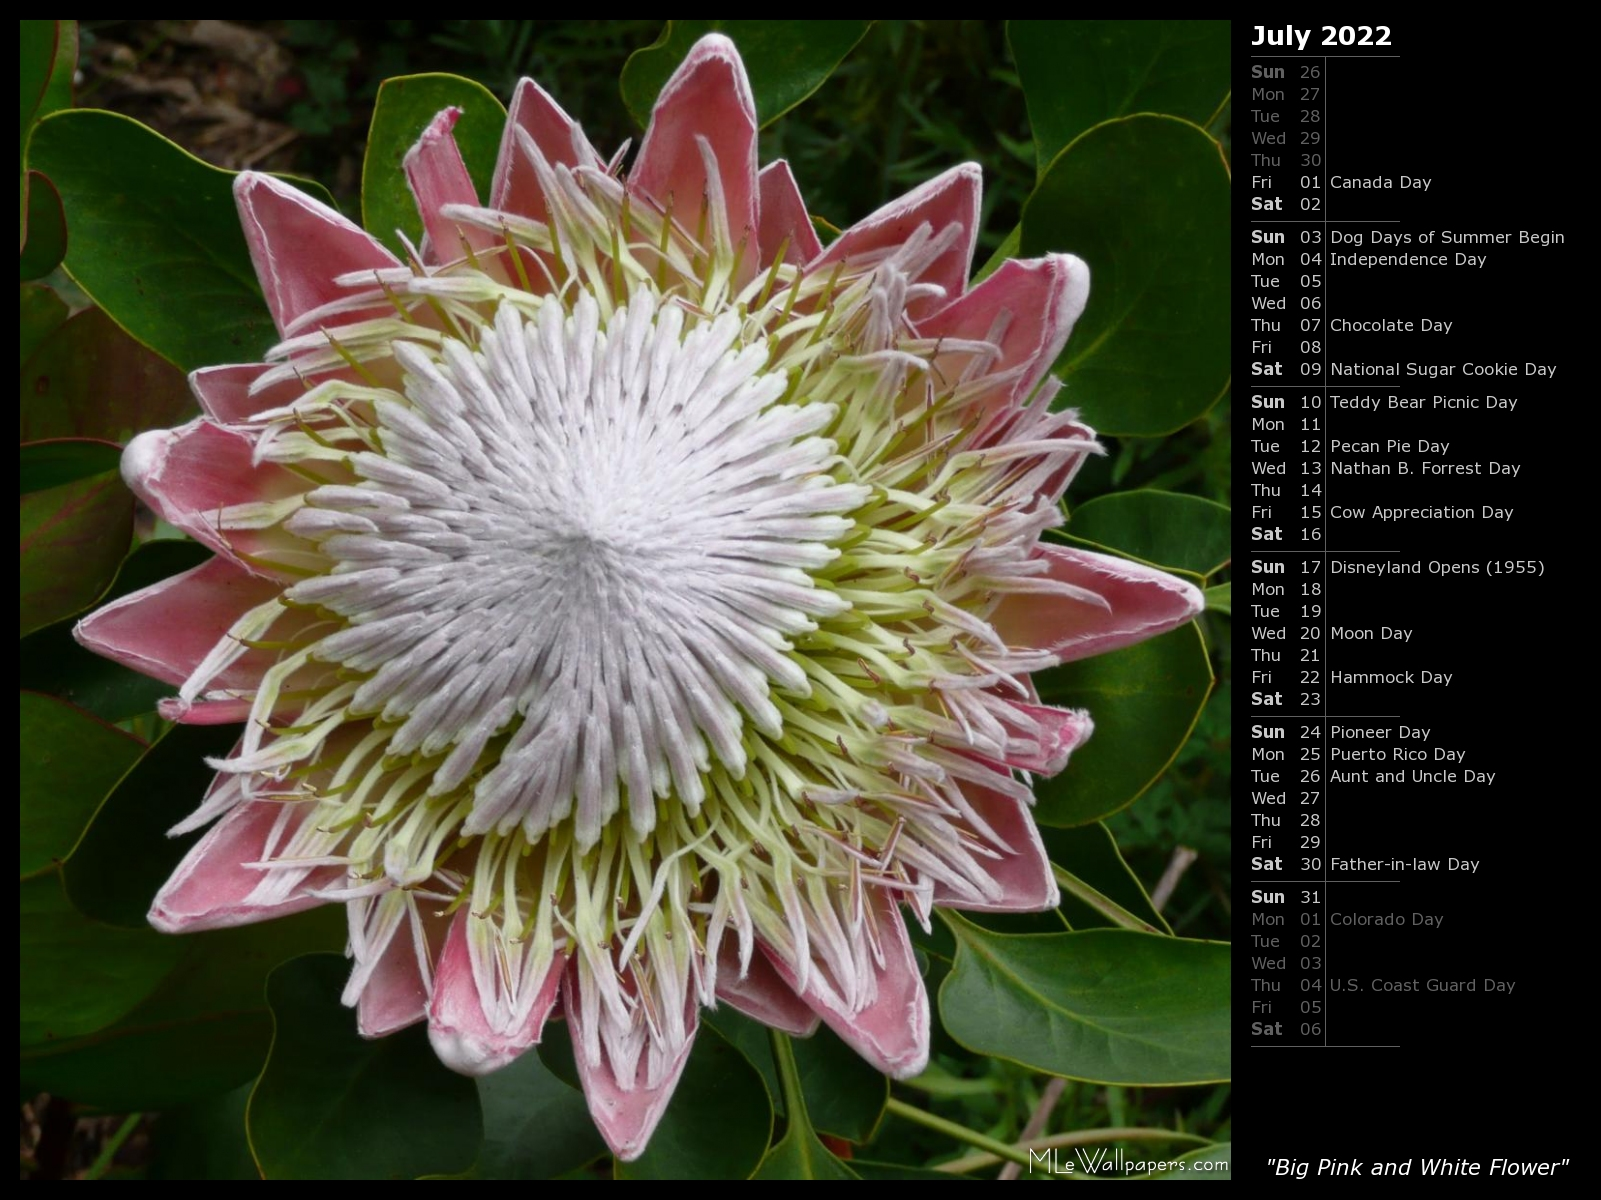 Mlewallpapers big pink and white flower calendar big pink and white flower mightylinksfo